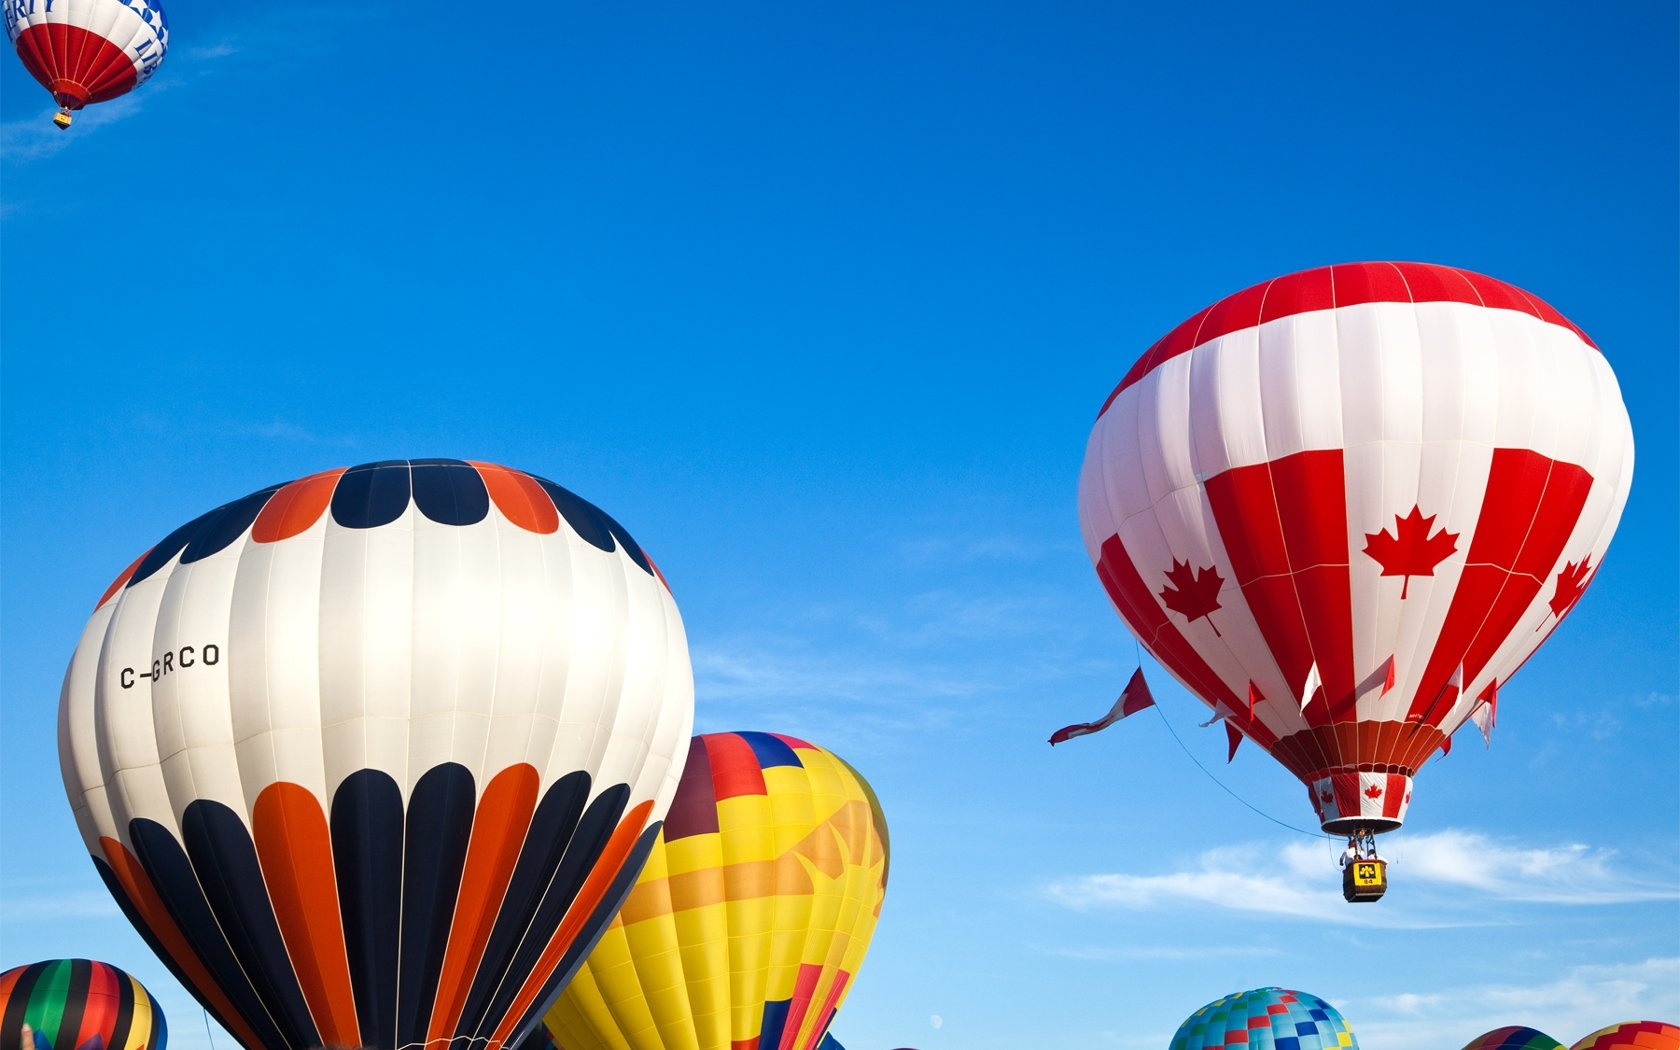 Download Wallpaper 1680x1050 Colorful hot air balloon HD ...